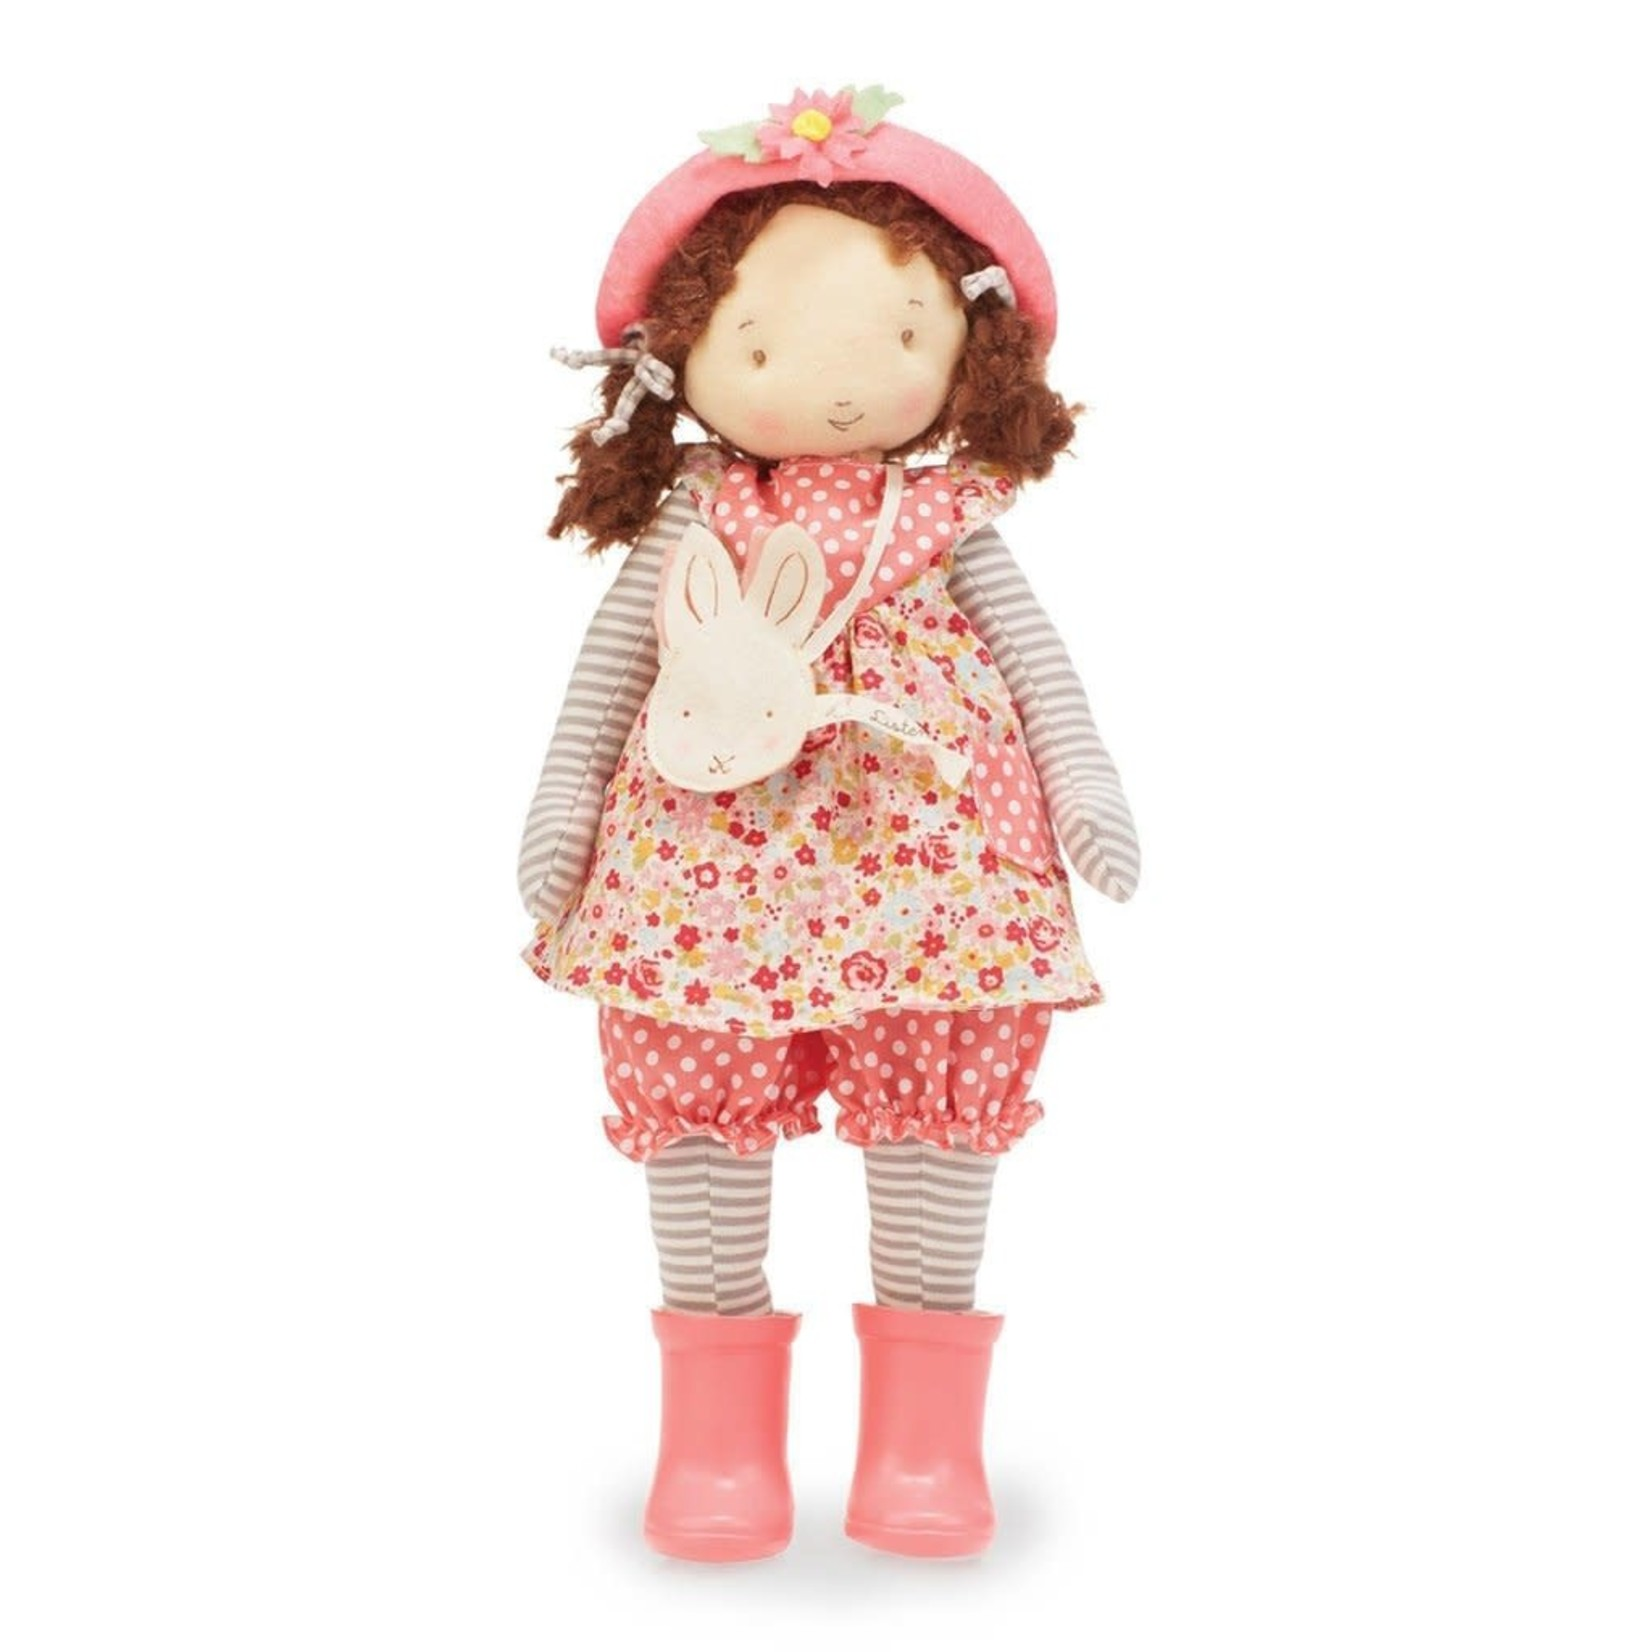 Bunnies By the Bay Daisy Girl Doll - Friend Doll With Mask